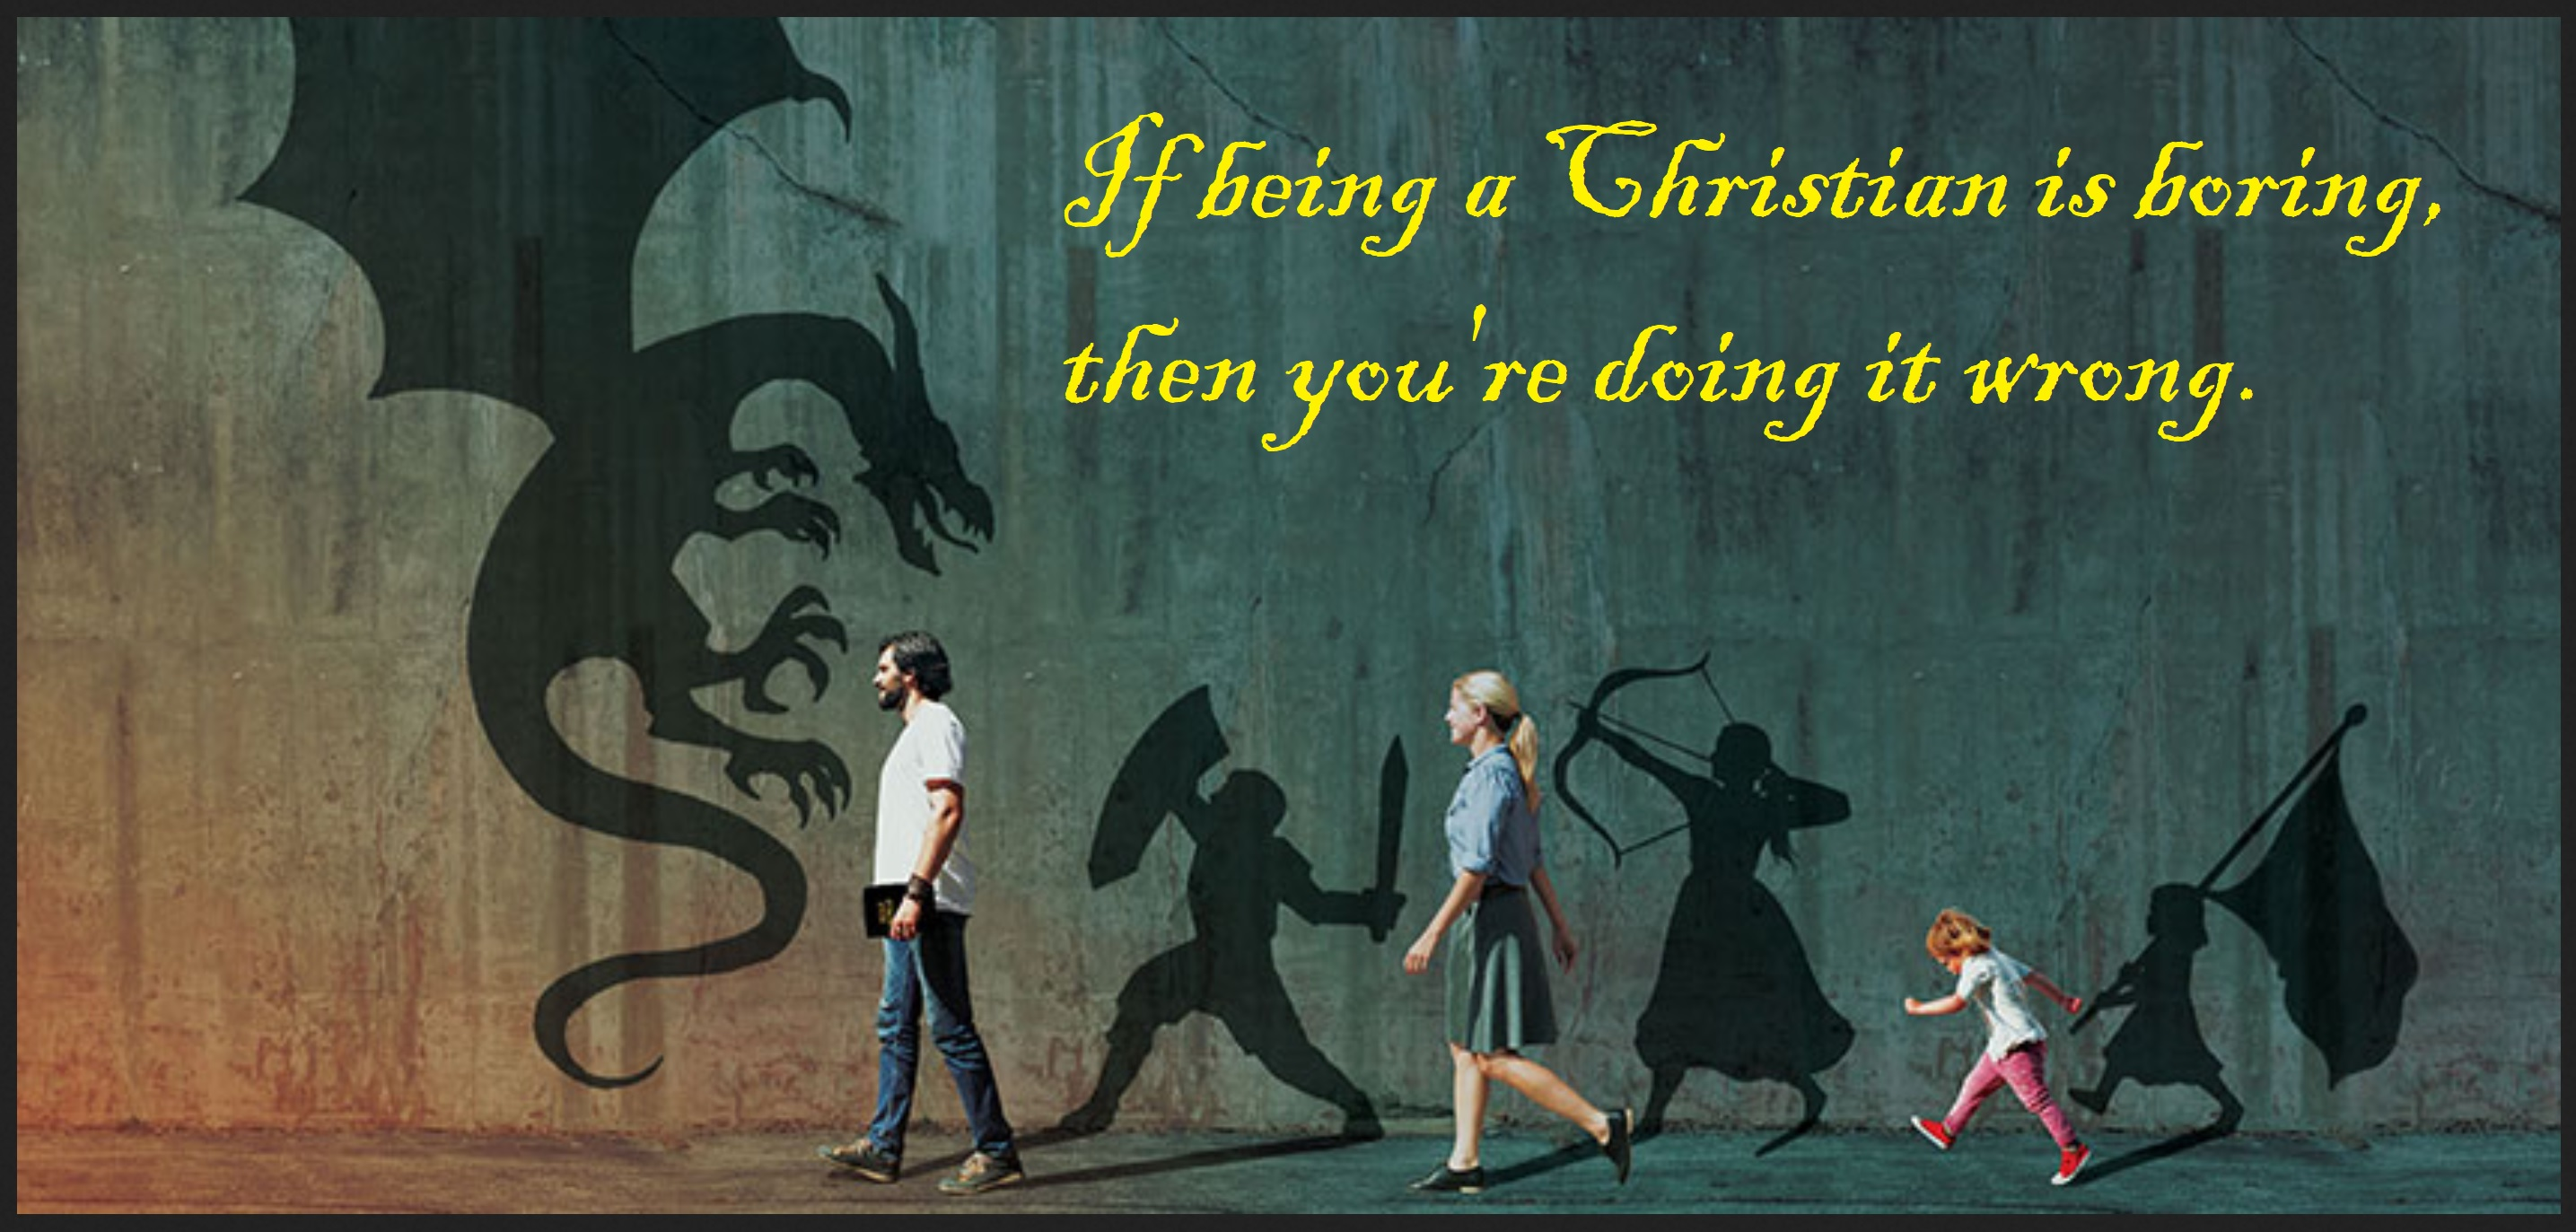 2021-09-15 WW - Is It Boring Being a Christian